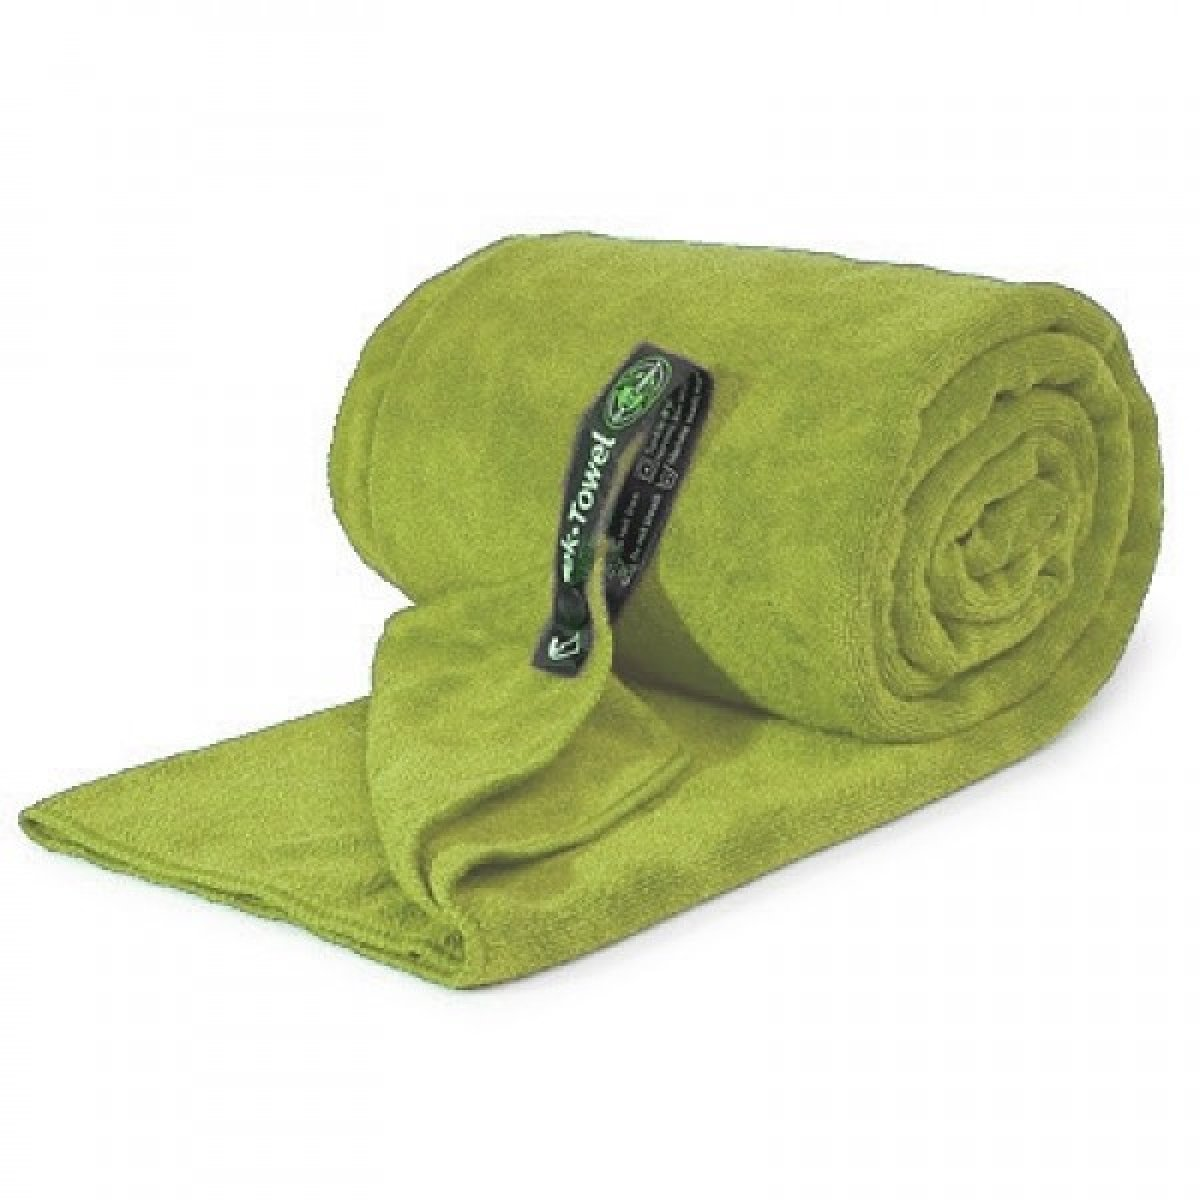 Полотенце Sea to Summit DryLite Towel Lime, XS STS ADRYXSLI